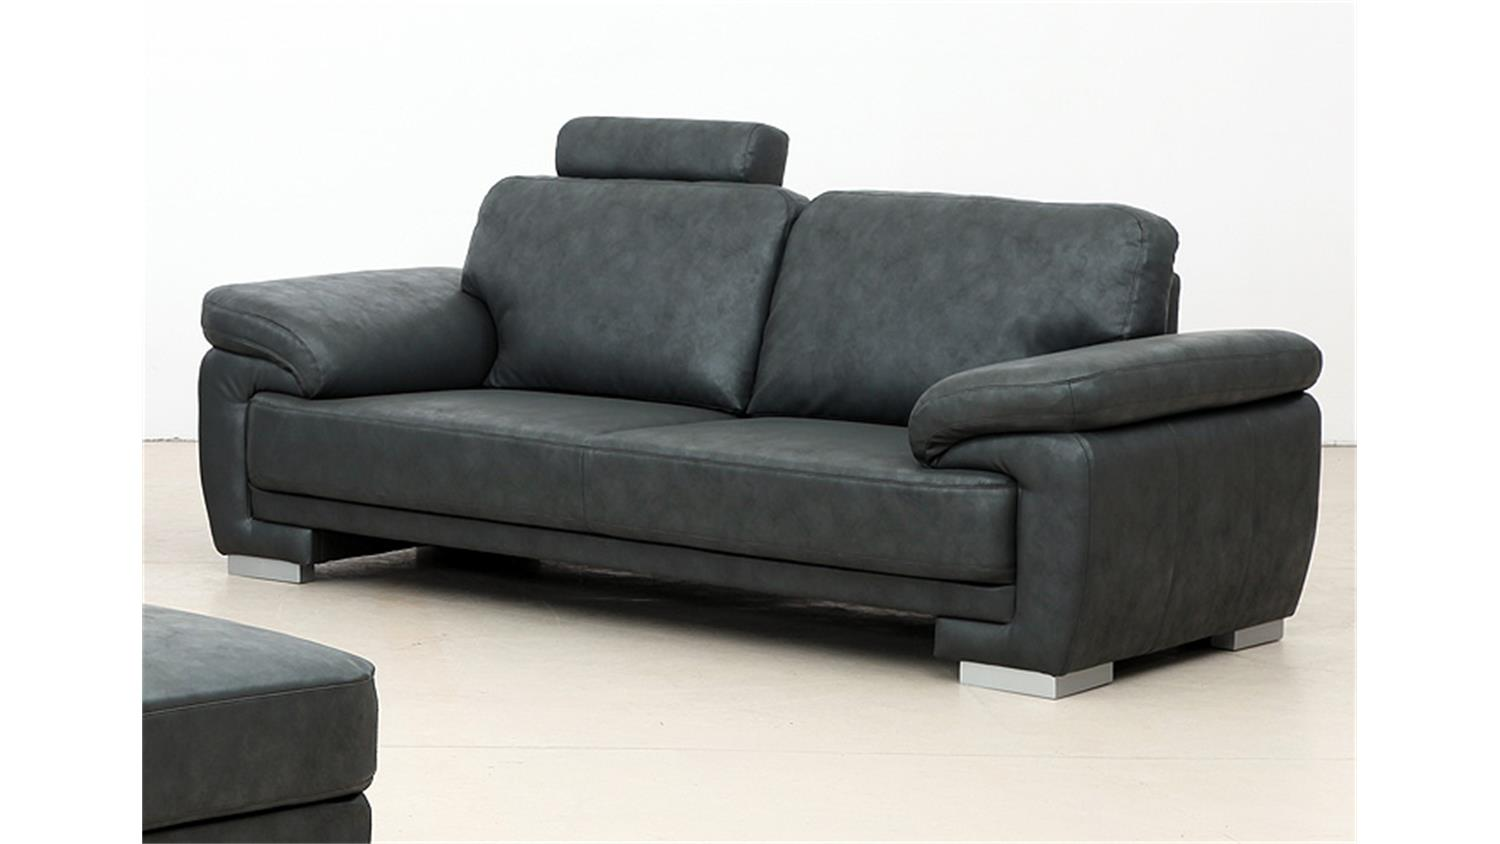 3 sitzer schlafsofa badezimmer schlafzimmer sessel m bel design ideen. Black Bedroom Furniture Sets. Home Design Ideas